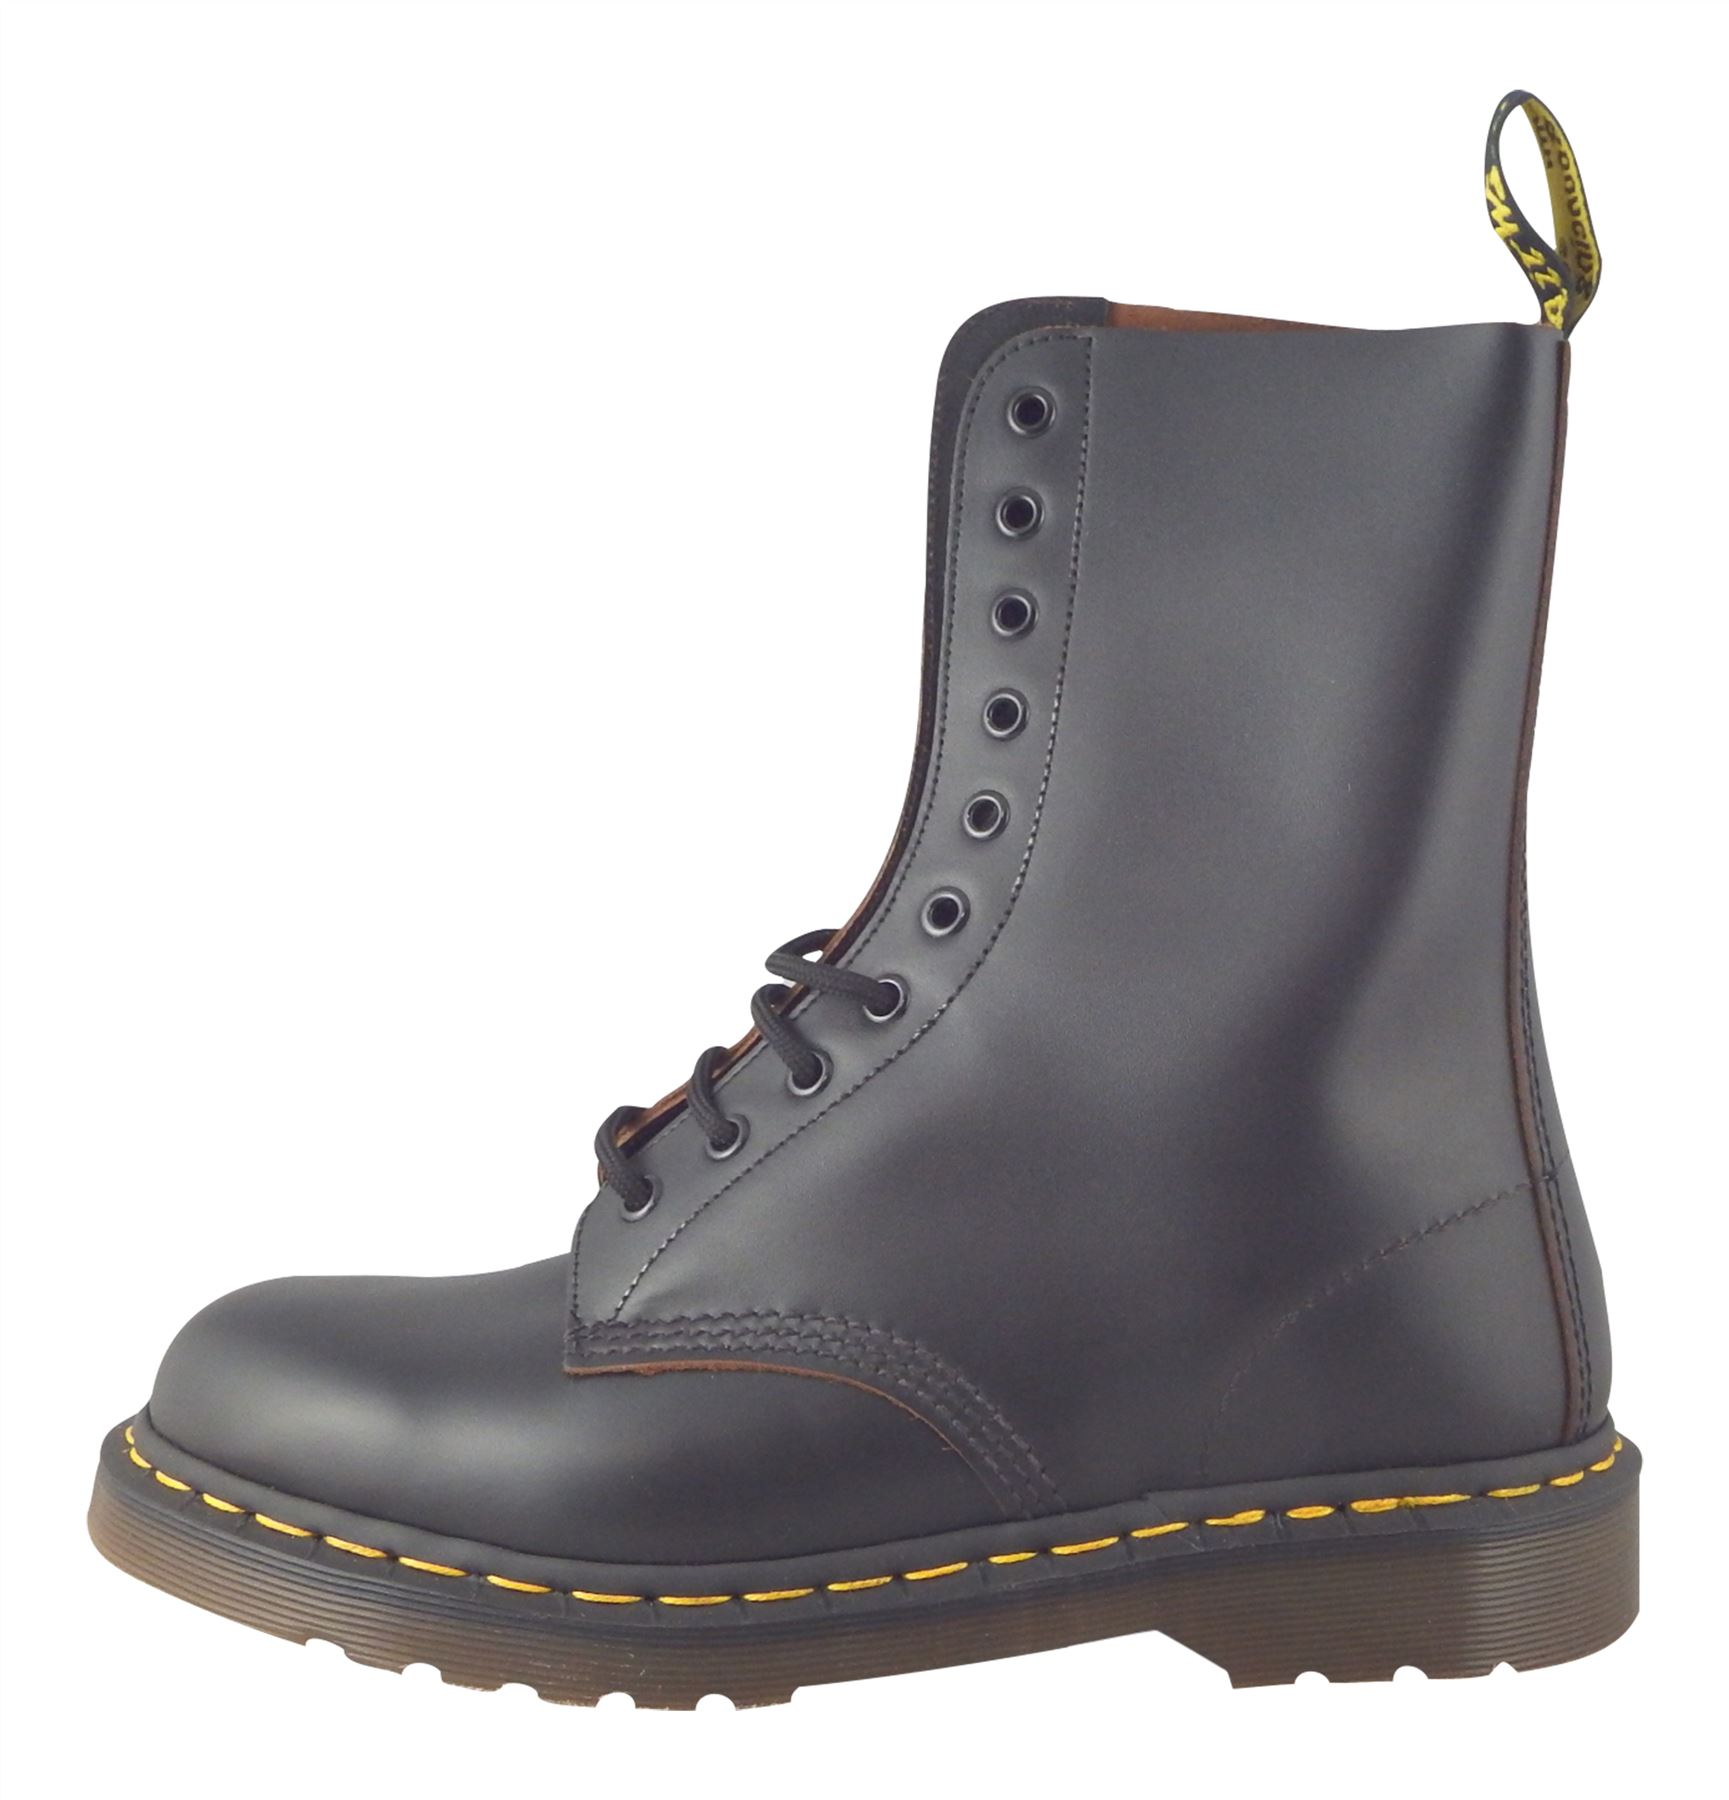 40a66ad7d38 Dr Martens 1490 Made In England MIE Black Quilon Leather Ankle Doc ...